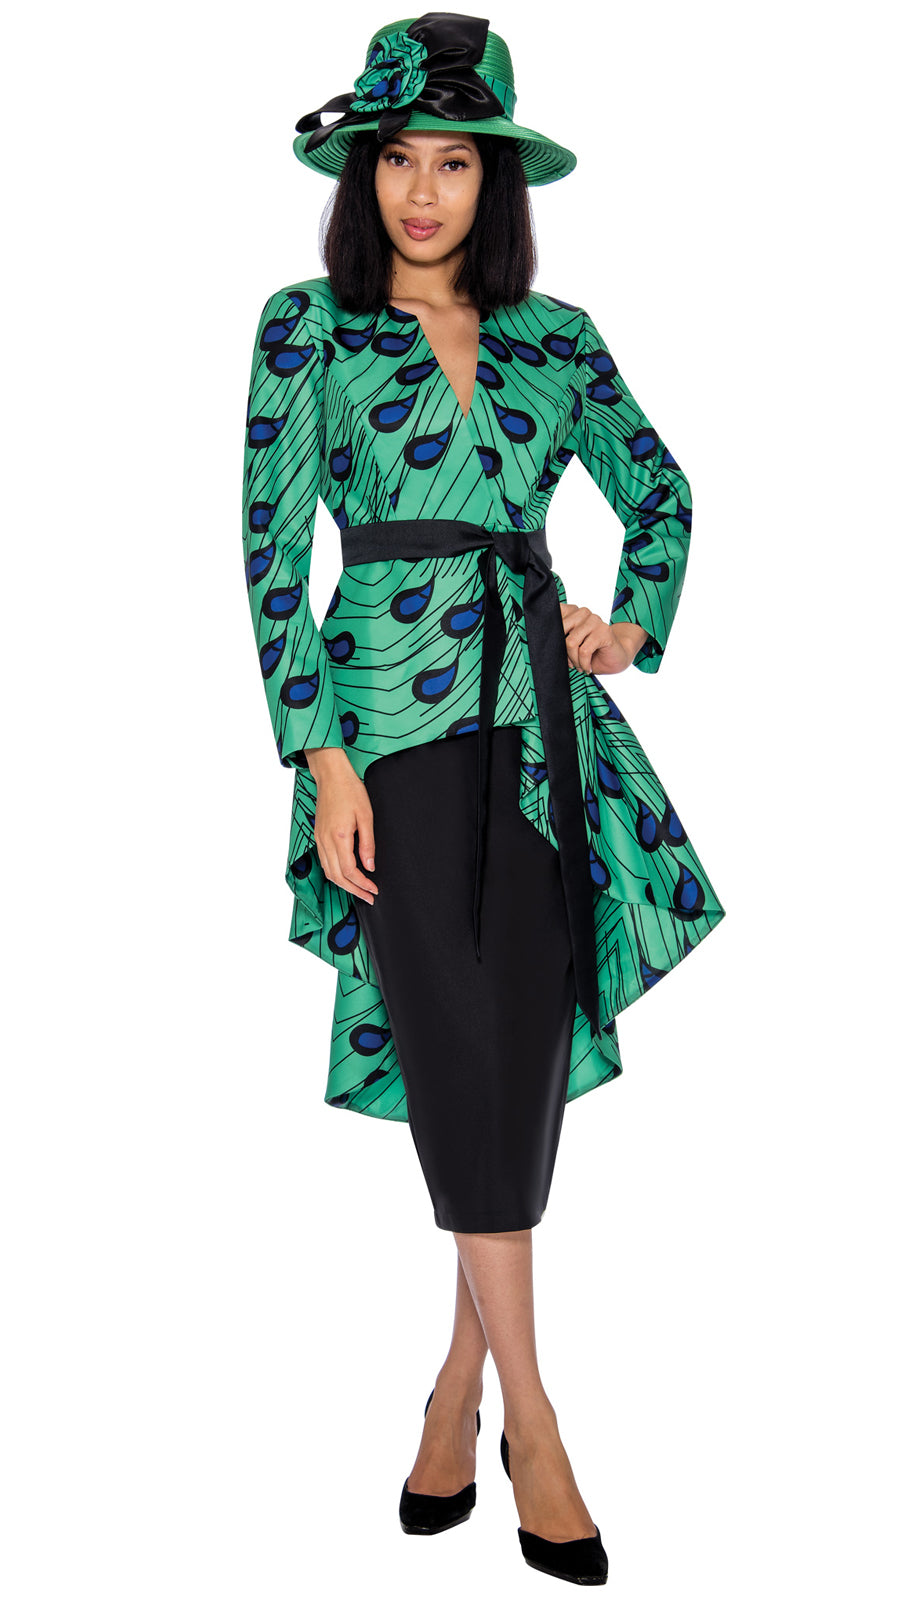 GMI Suit 7362H-Green Multi - Church Suits For Less